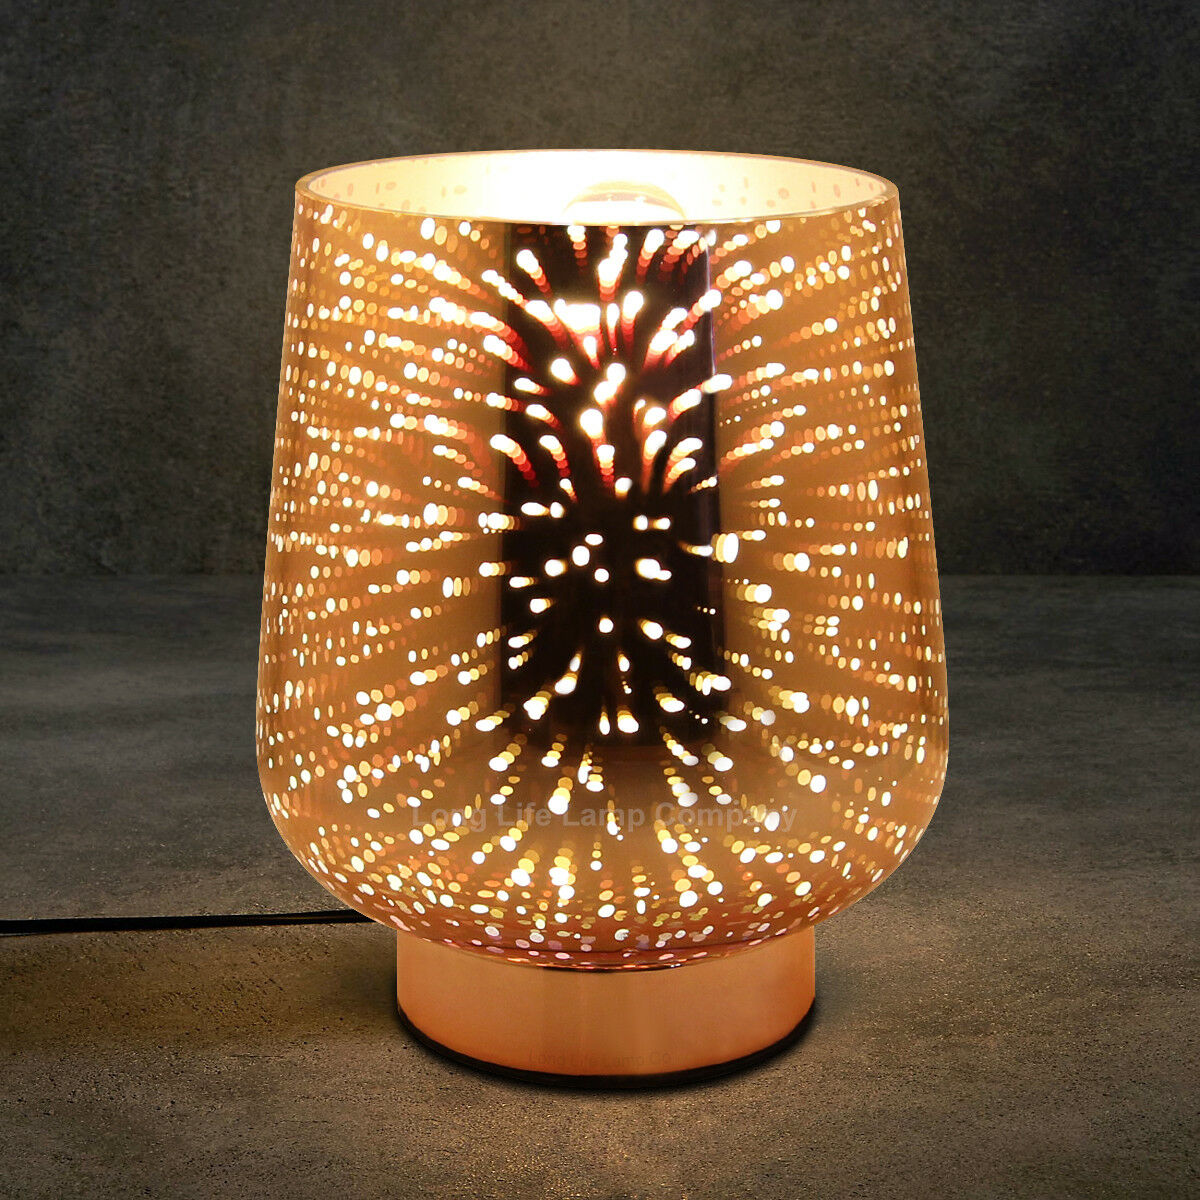 Commercial Table Lamps: 3D Effect GLASS TABLE LAMP Bedroom Restaurant Reception